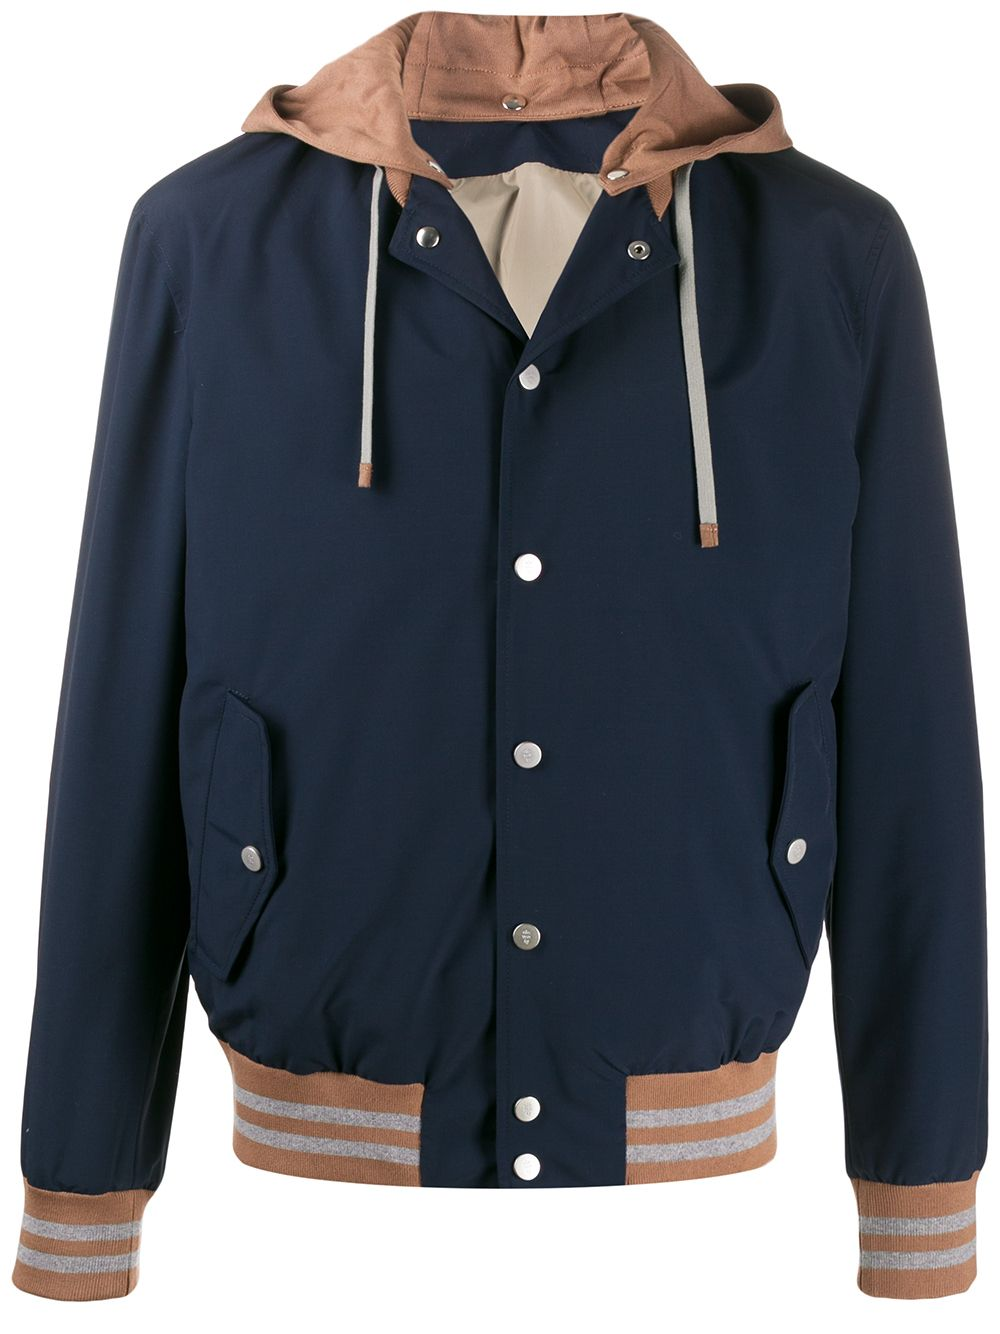 Blue cotton and wool blend two-tone hooded jacket  ELEVENTY      A75GBTA22-GBT270078200